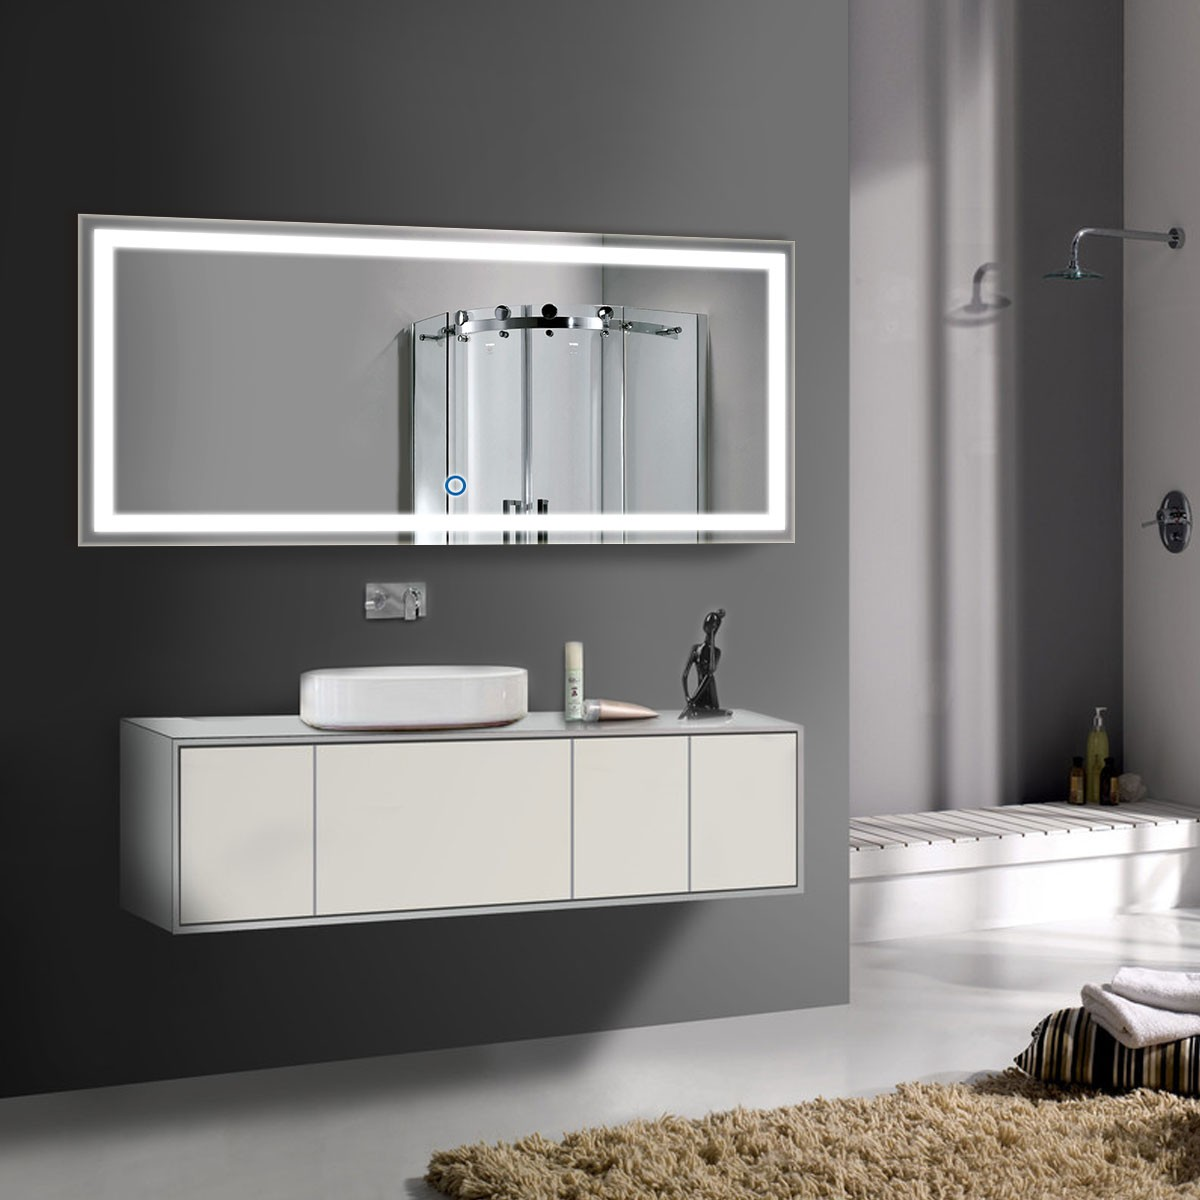 70 x 32 In. Horizontal LED Illuminated Bathroom Mirror, Touch Button (DK-OD-CK010-A)